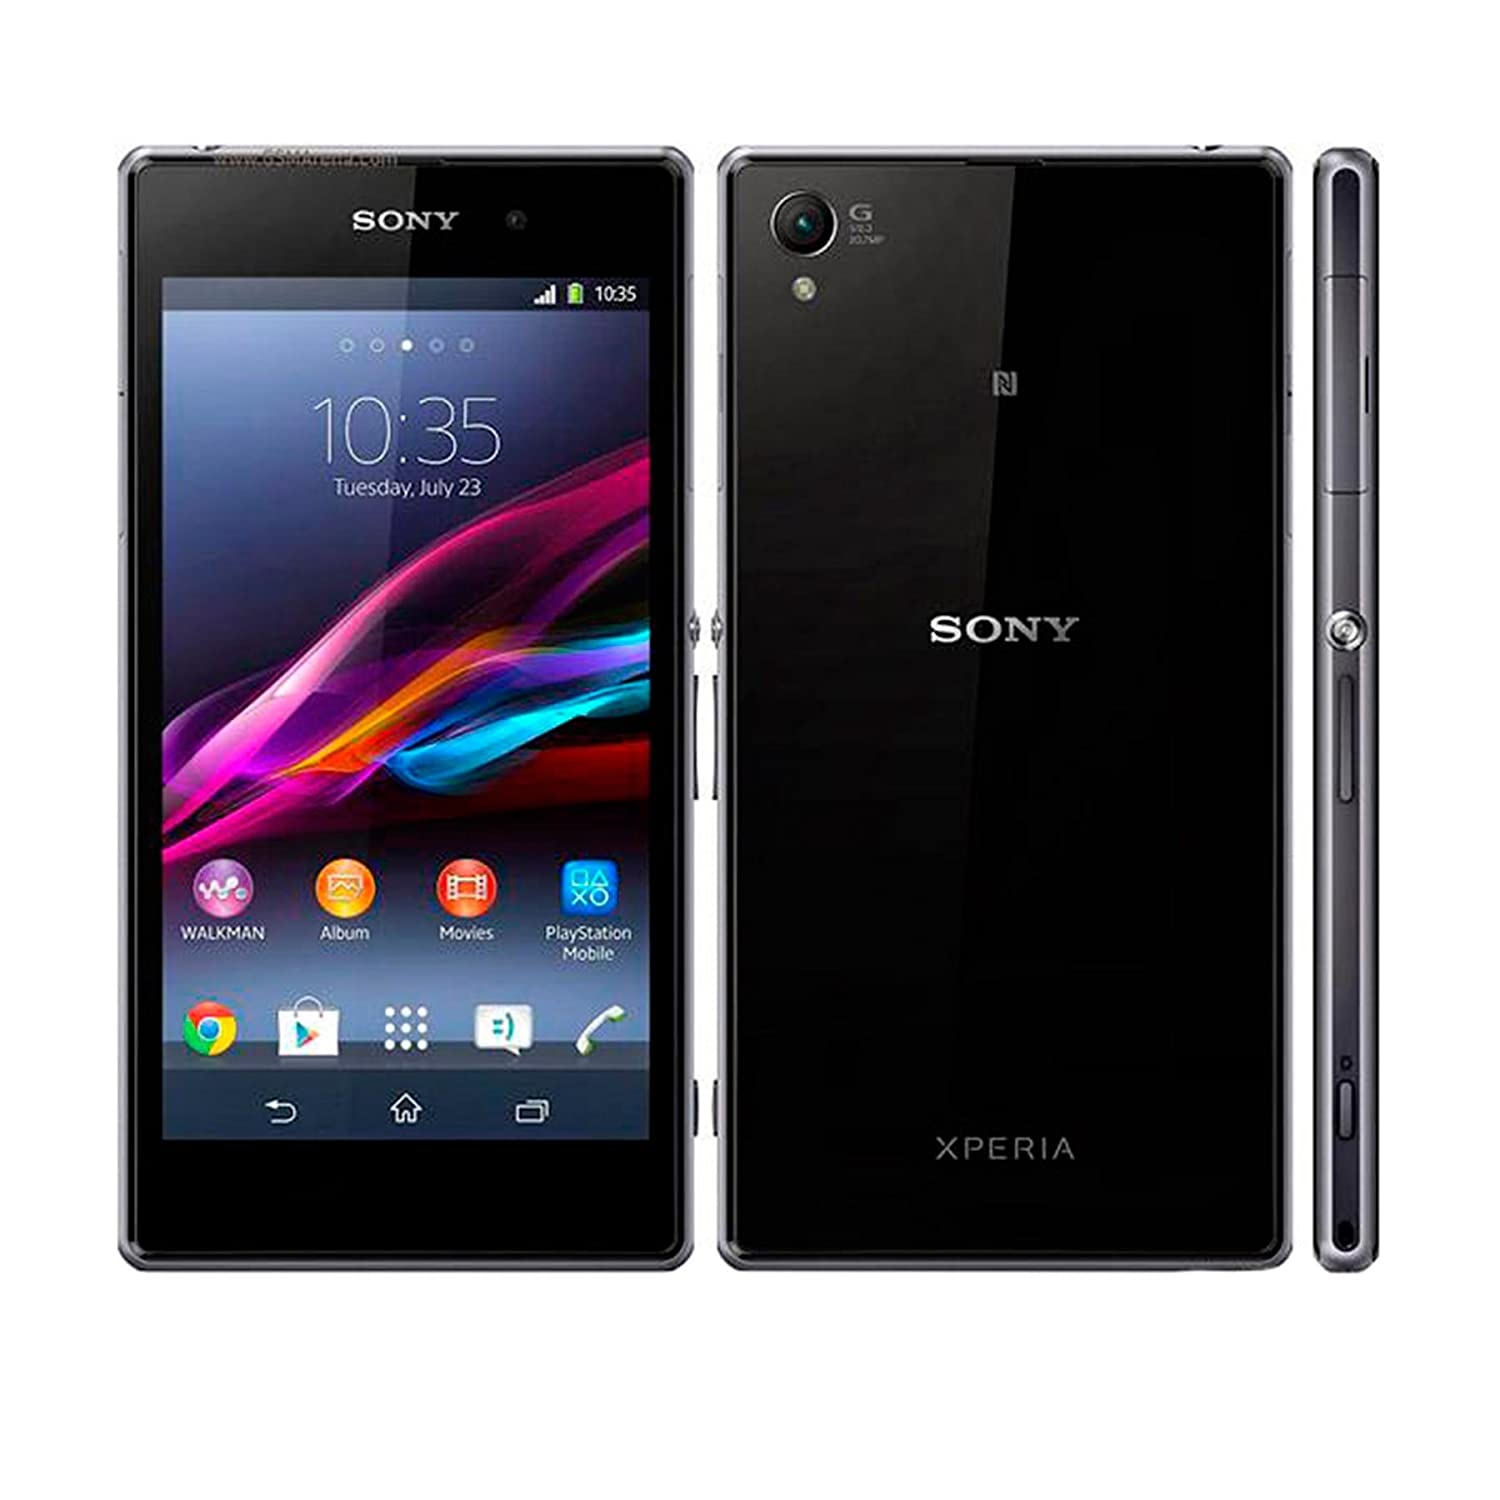 SONY Z ULTRA (GOOGLE PLAY EDITION) PHONE USB DOWNLOAD DRIVER